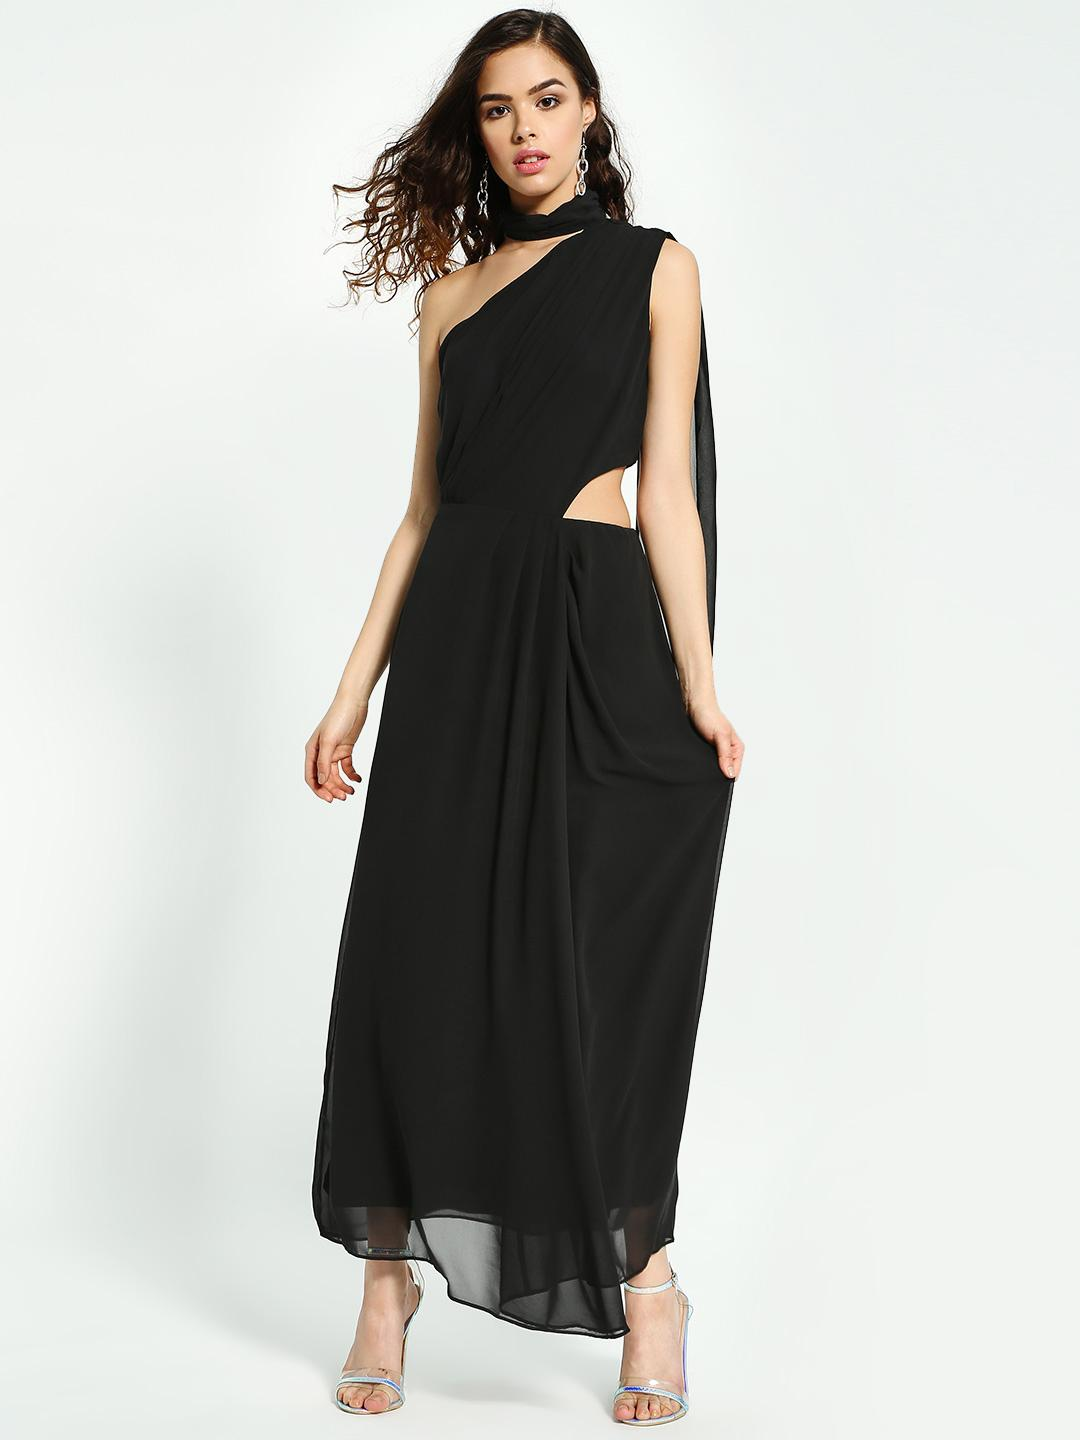 Oliv Black Choker Neck Cut-Out Maxi Dress 1